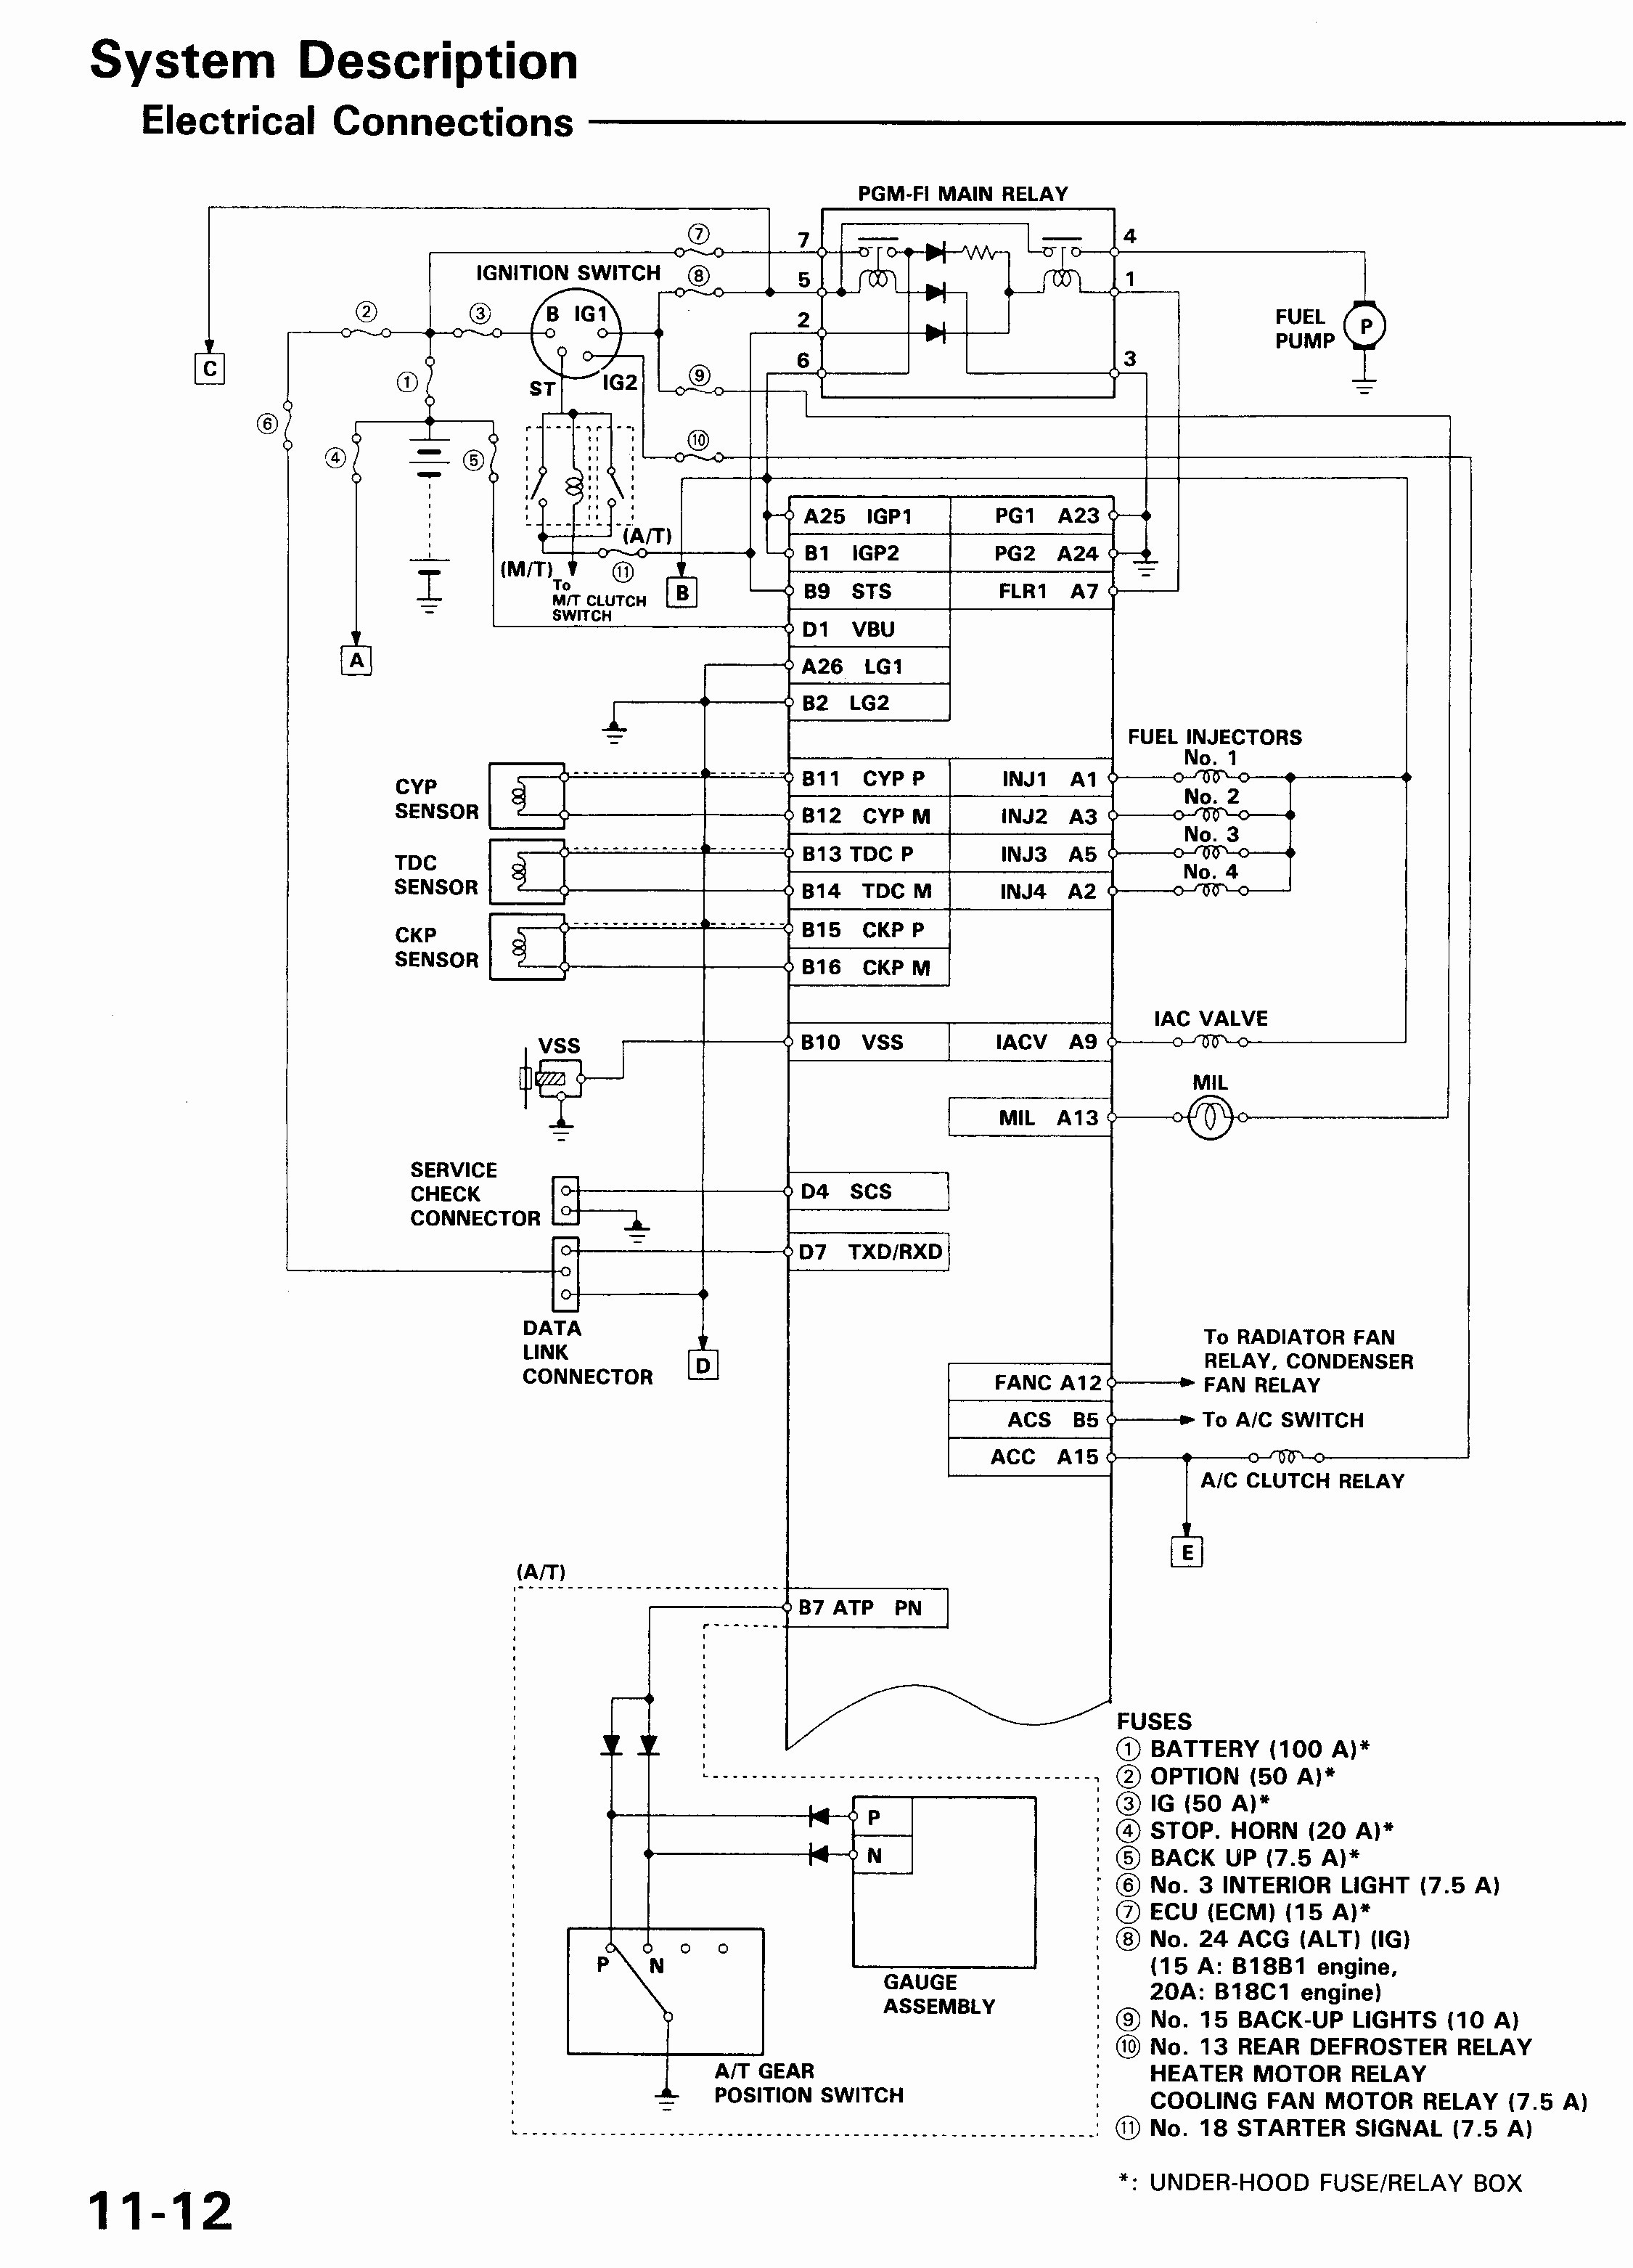 Honda Legend Wiring Diagram Save Wiring Diagram Honda Civic Ignition Wiring Diagram Unique 2001